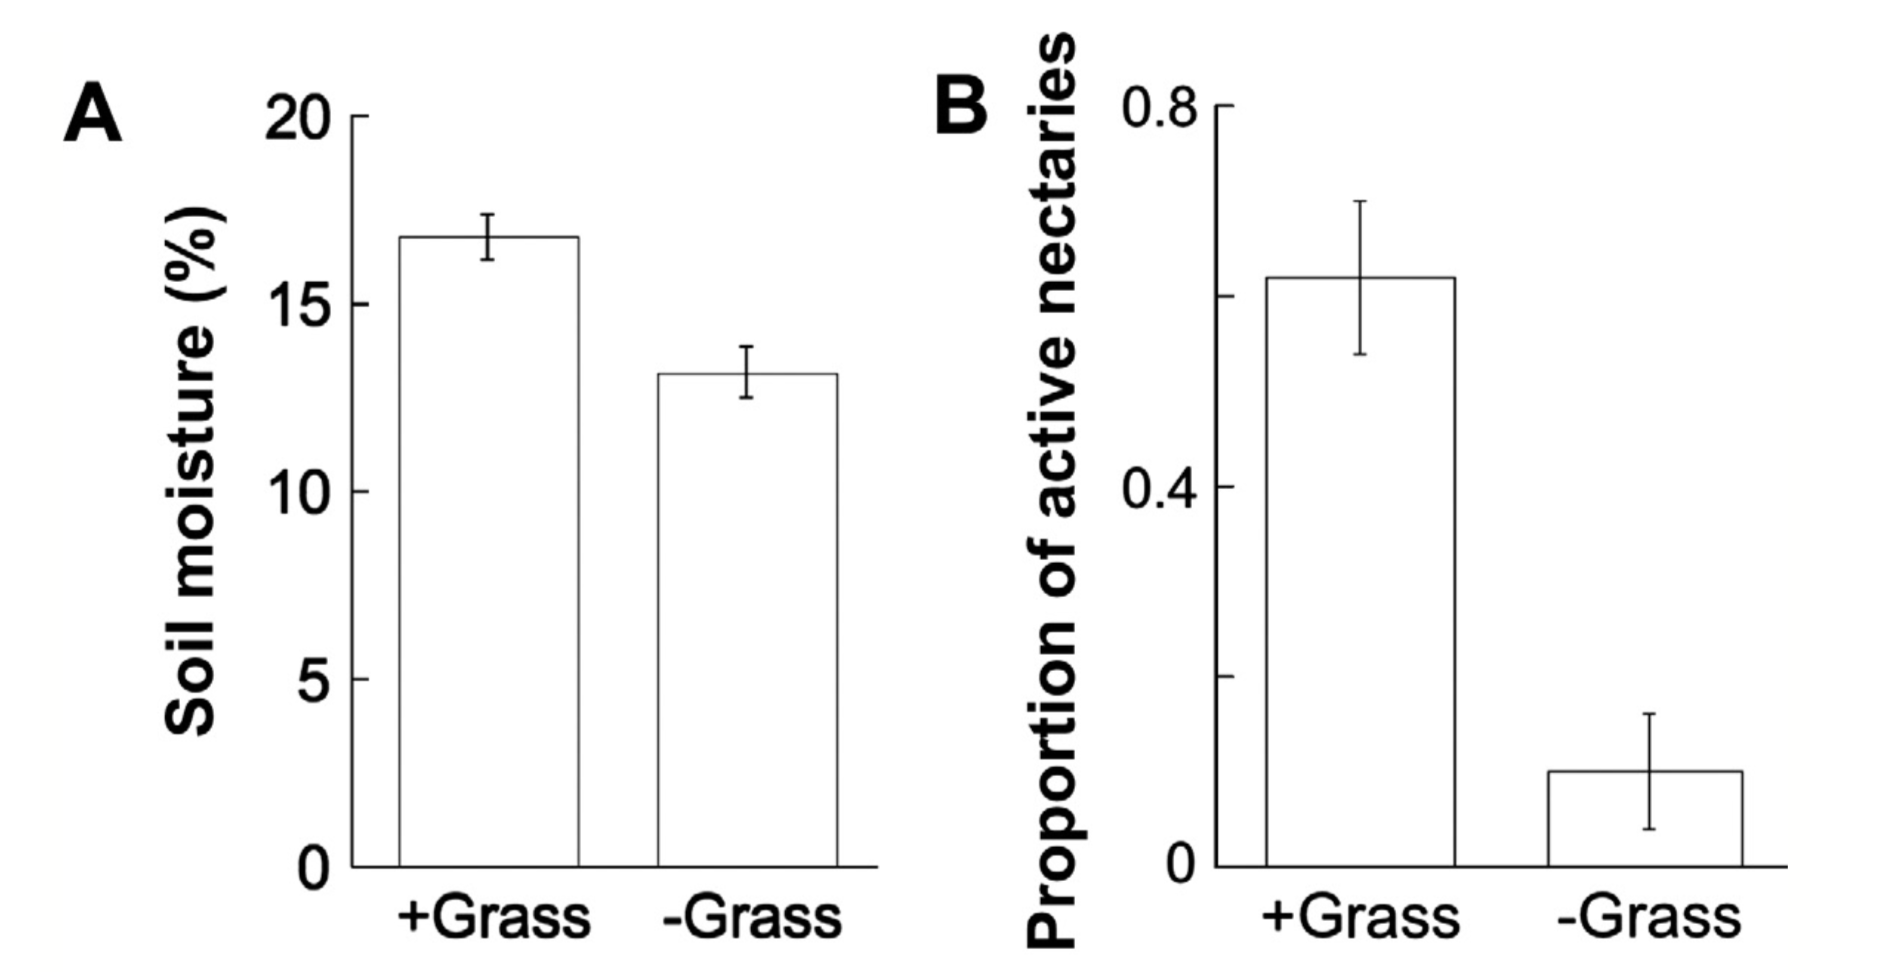 The precence of grass enhanced soil moisture. With more available water, more sugar can be produced. Palmer et al. 2017 .